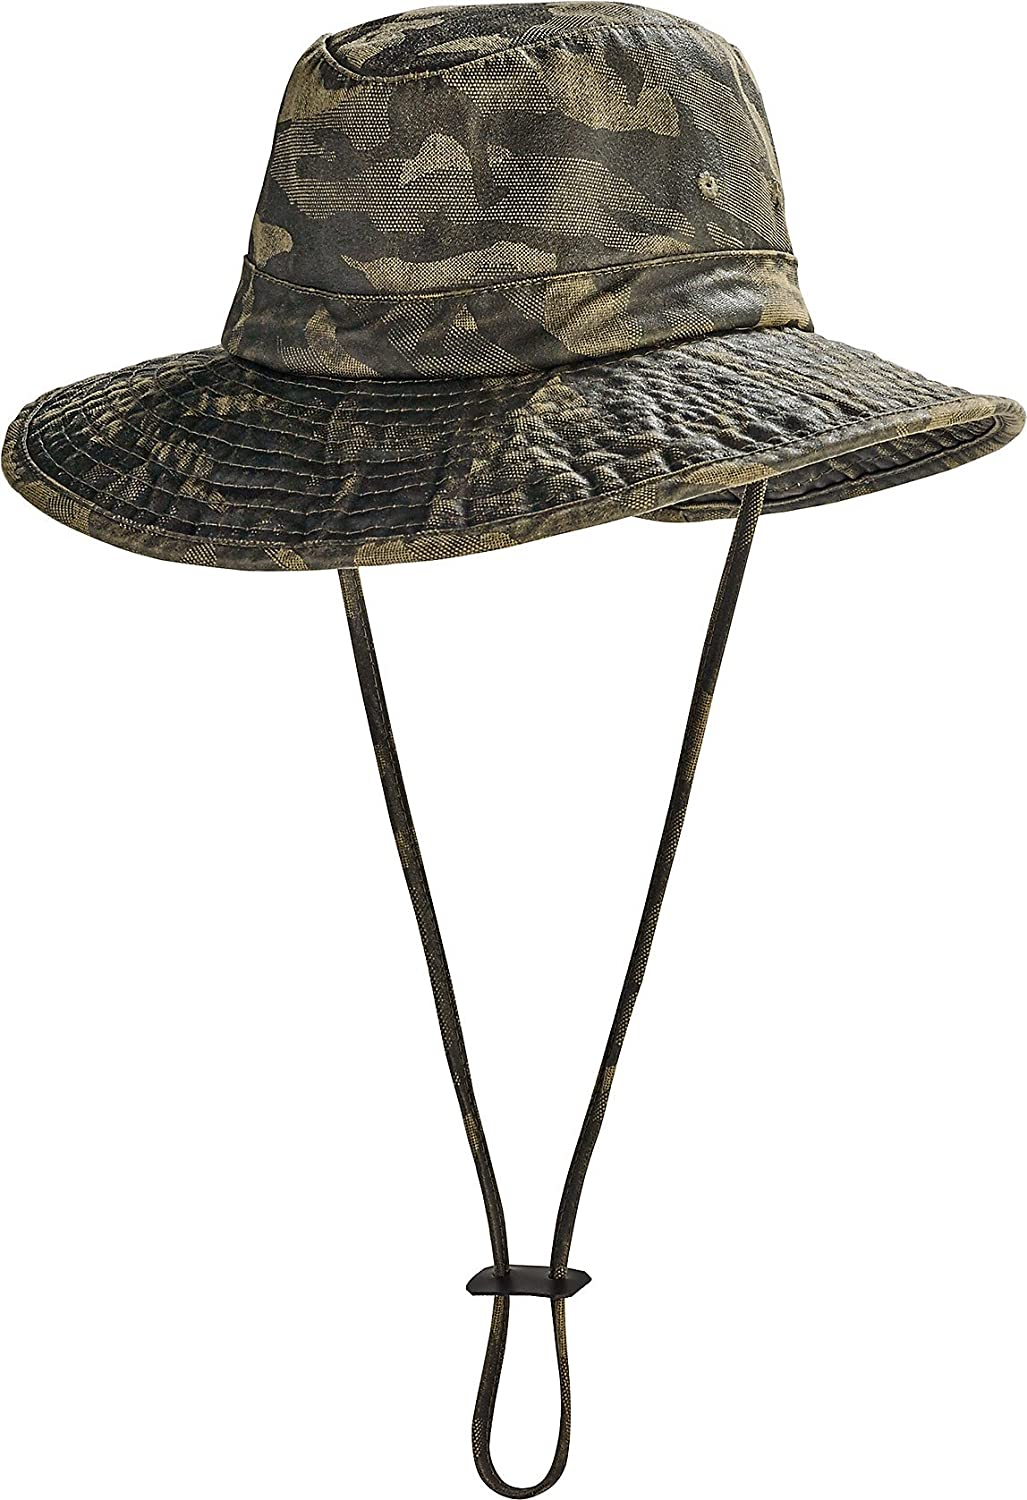 50a23b44 Amazon.com: Coolibar UPF 50+ Kids' Outback Boonie Sun Hat - Sun Protective:  Clothing